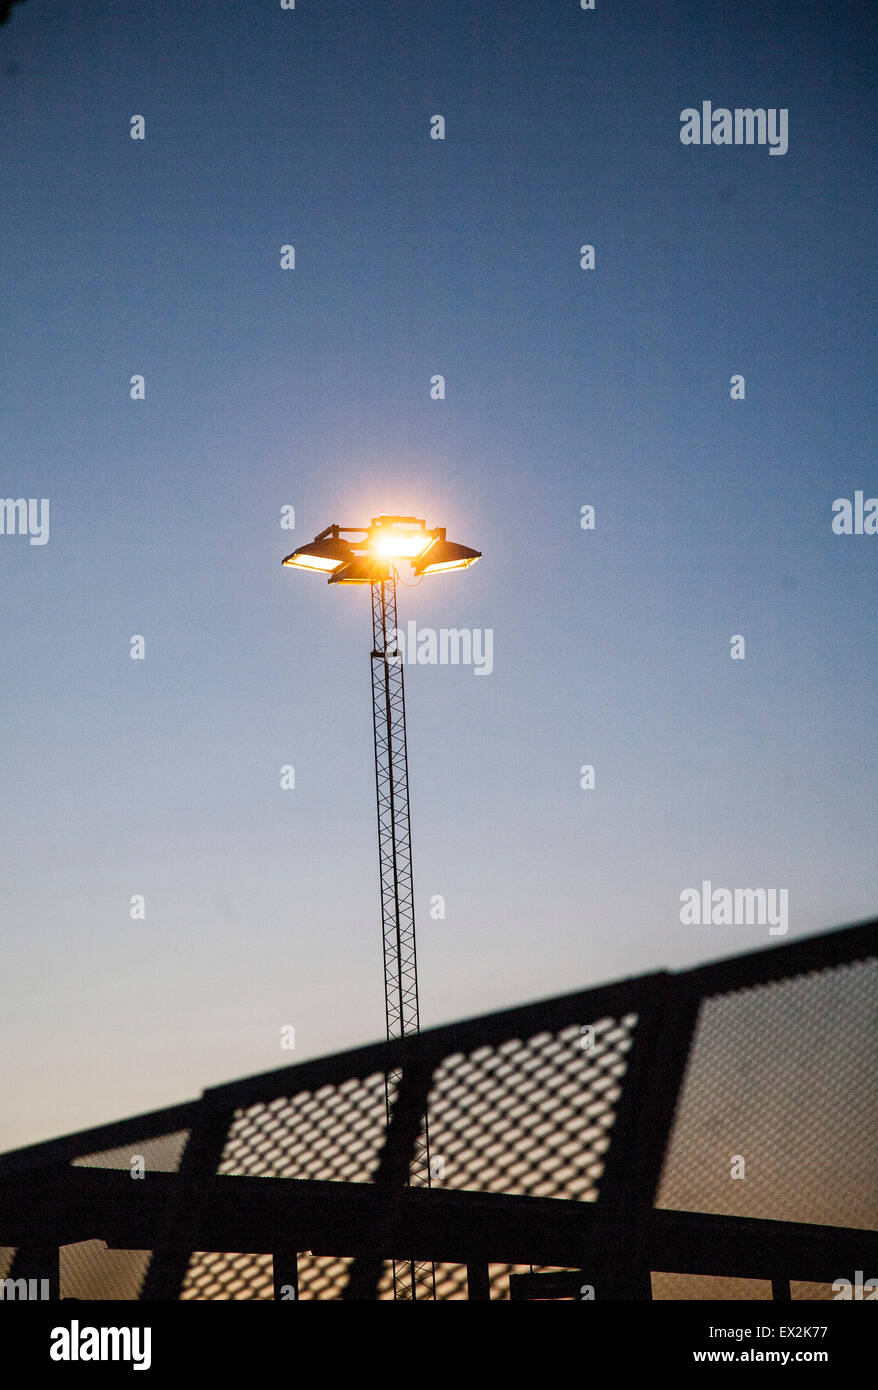 The illumination at an airport - Stock Image